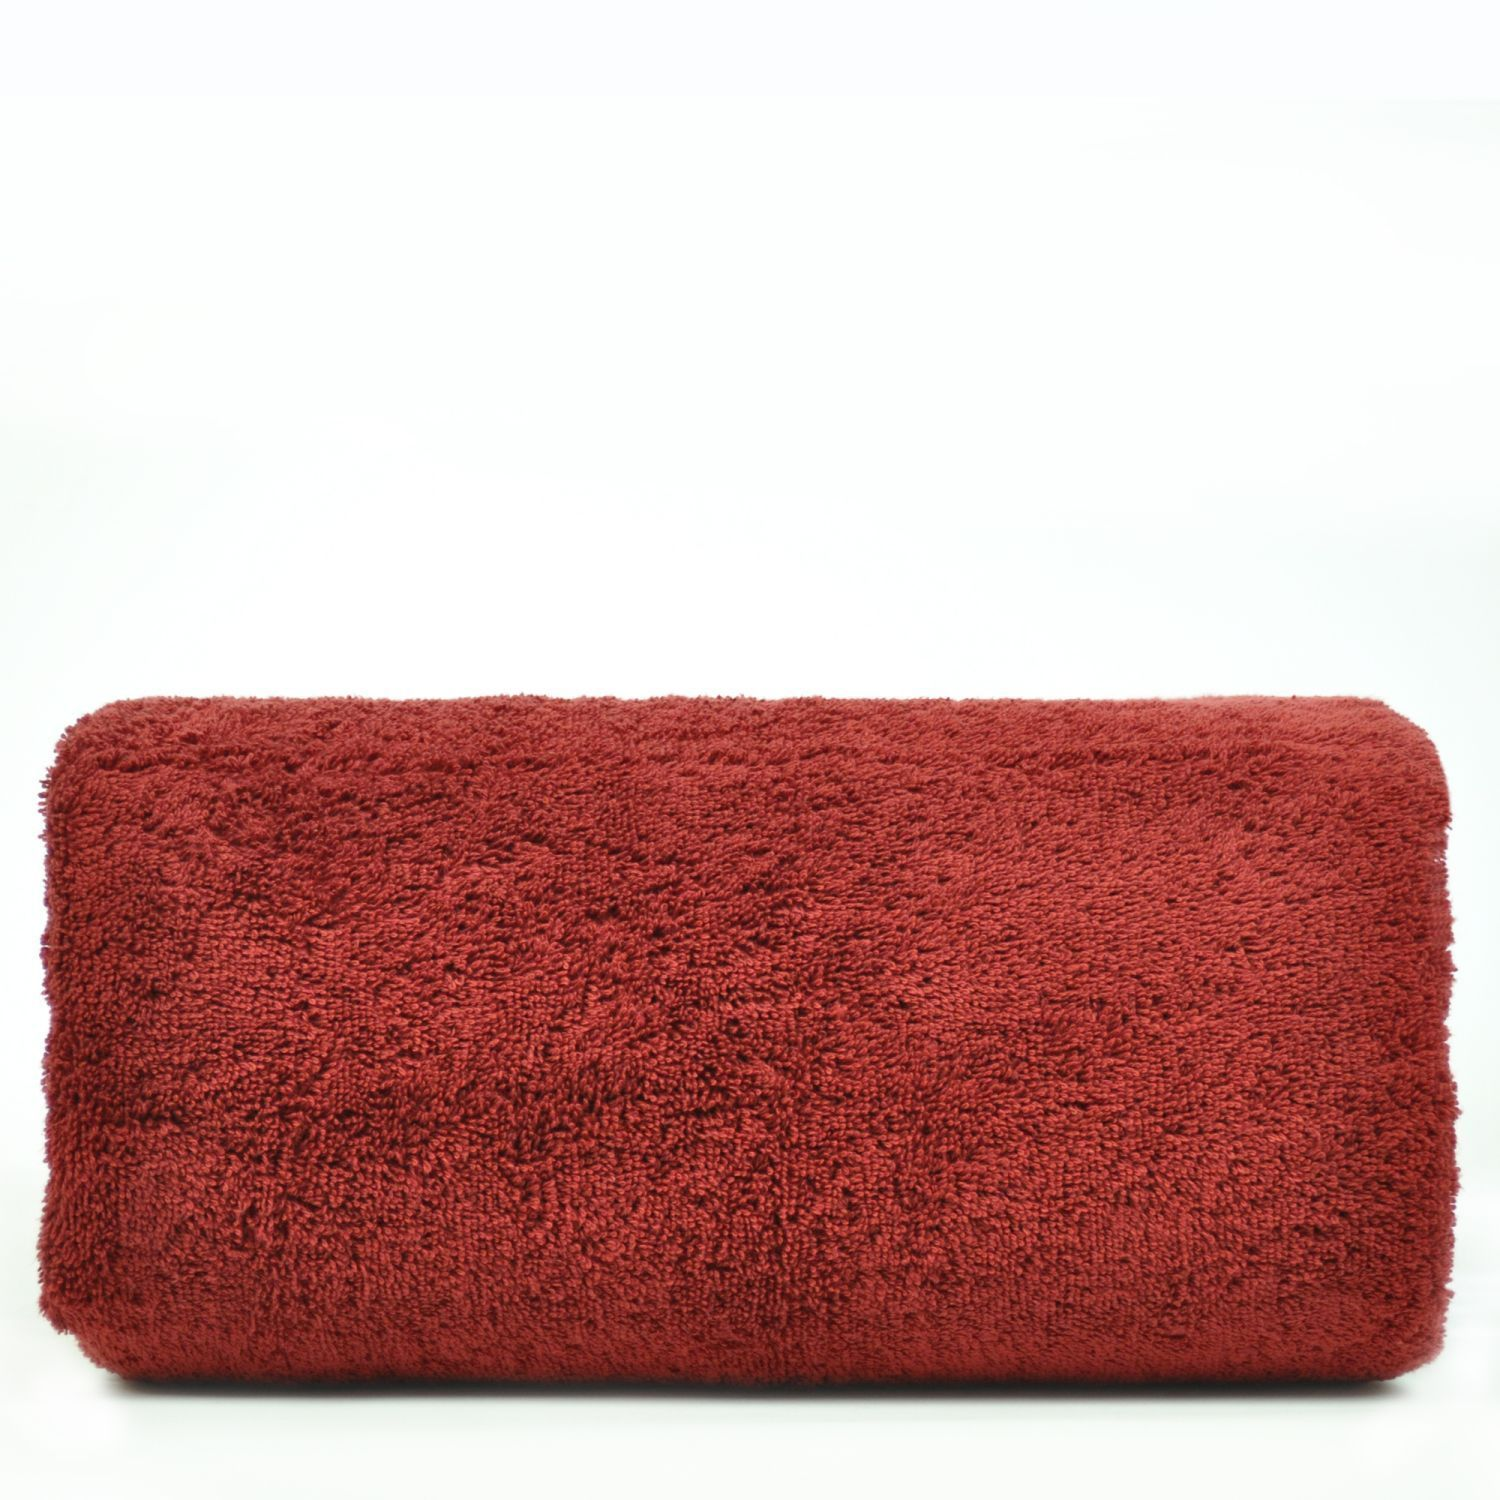 Oversized Bath Sheets Inspiration Luxury Hotel & Spa Towel 100% Genuine Turkish Cotton Oversized Bath Design Inspiration